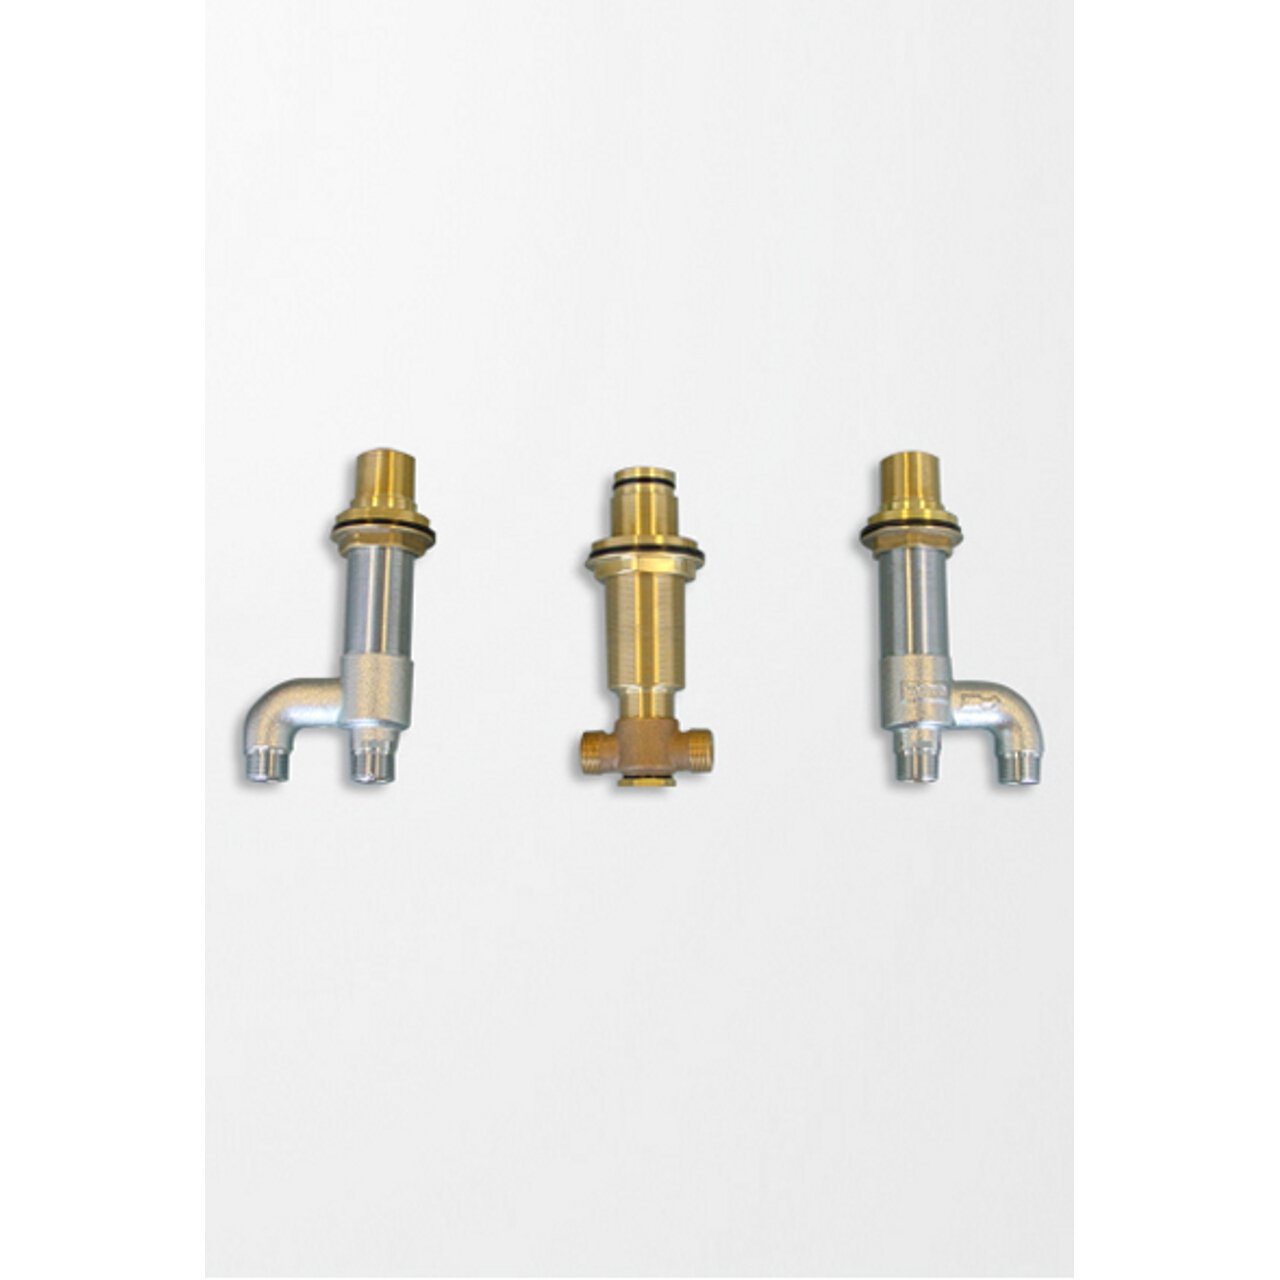 Toto TB6TR Deck-Mount Tub Filler Valve by TOTO